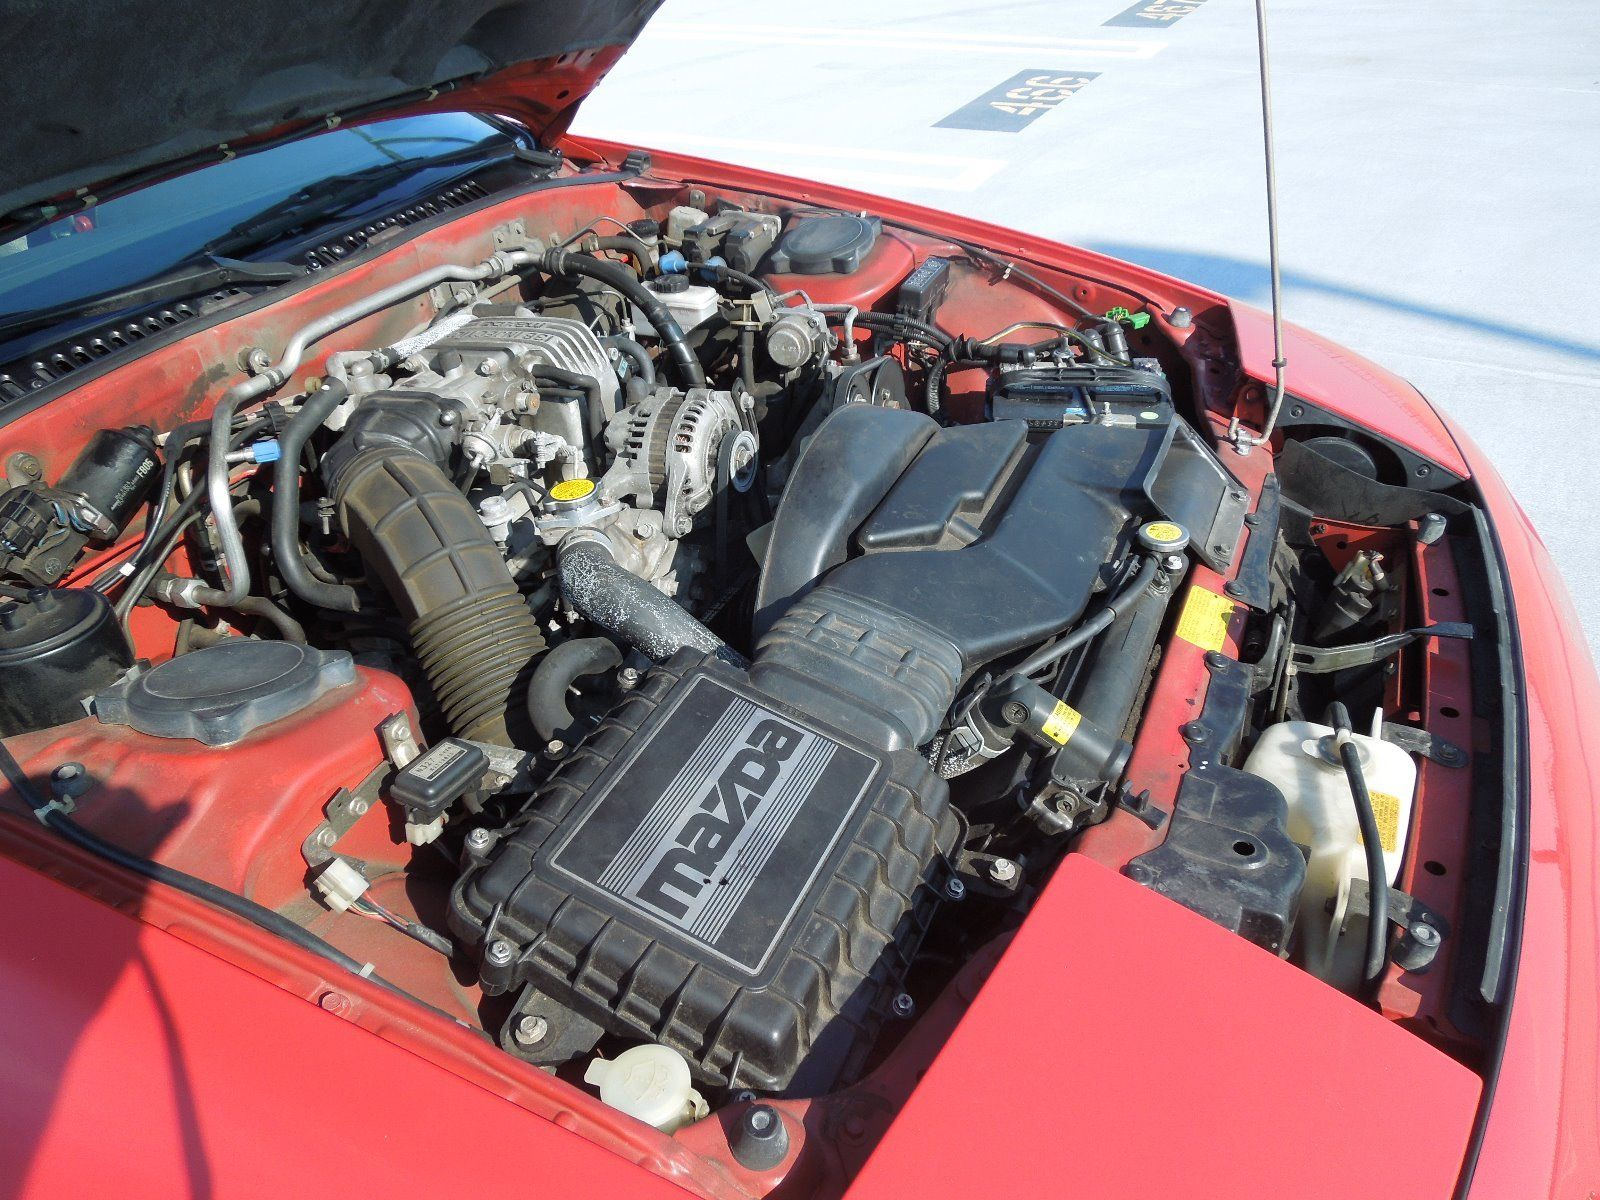 1988 Mazda RX-7 convertible engine